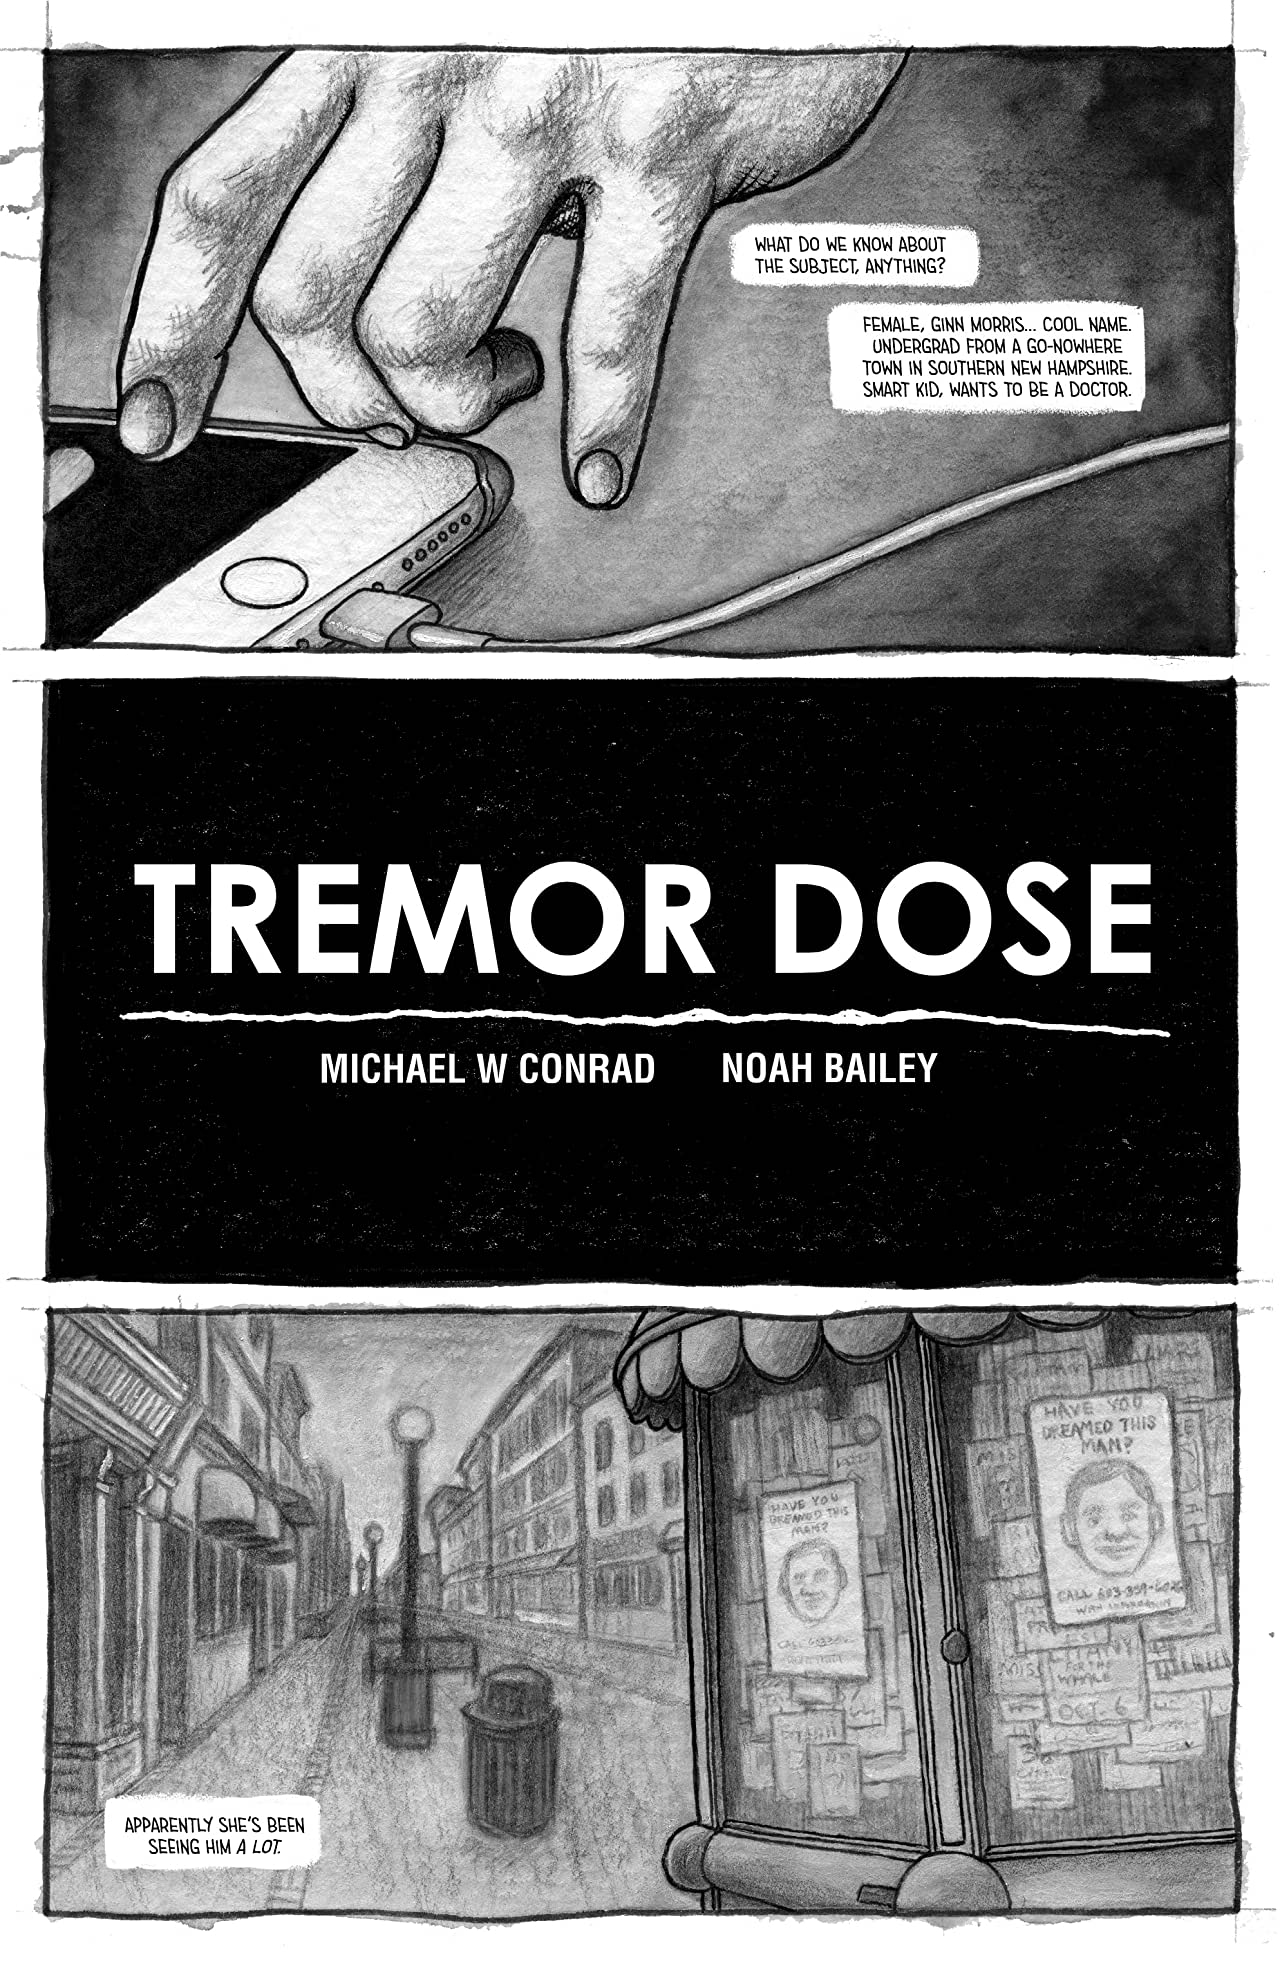 Tremor Dose (comiXology Originals)